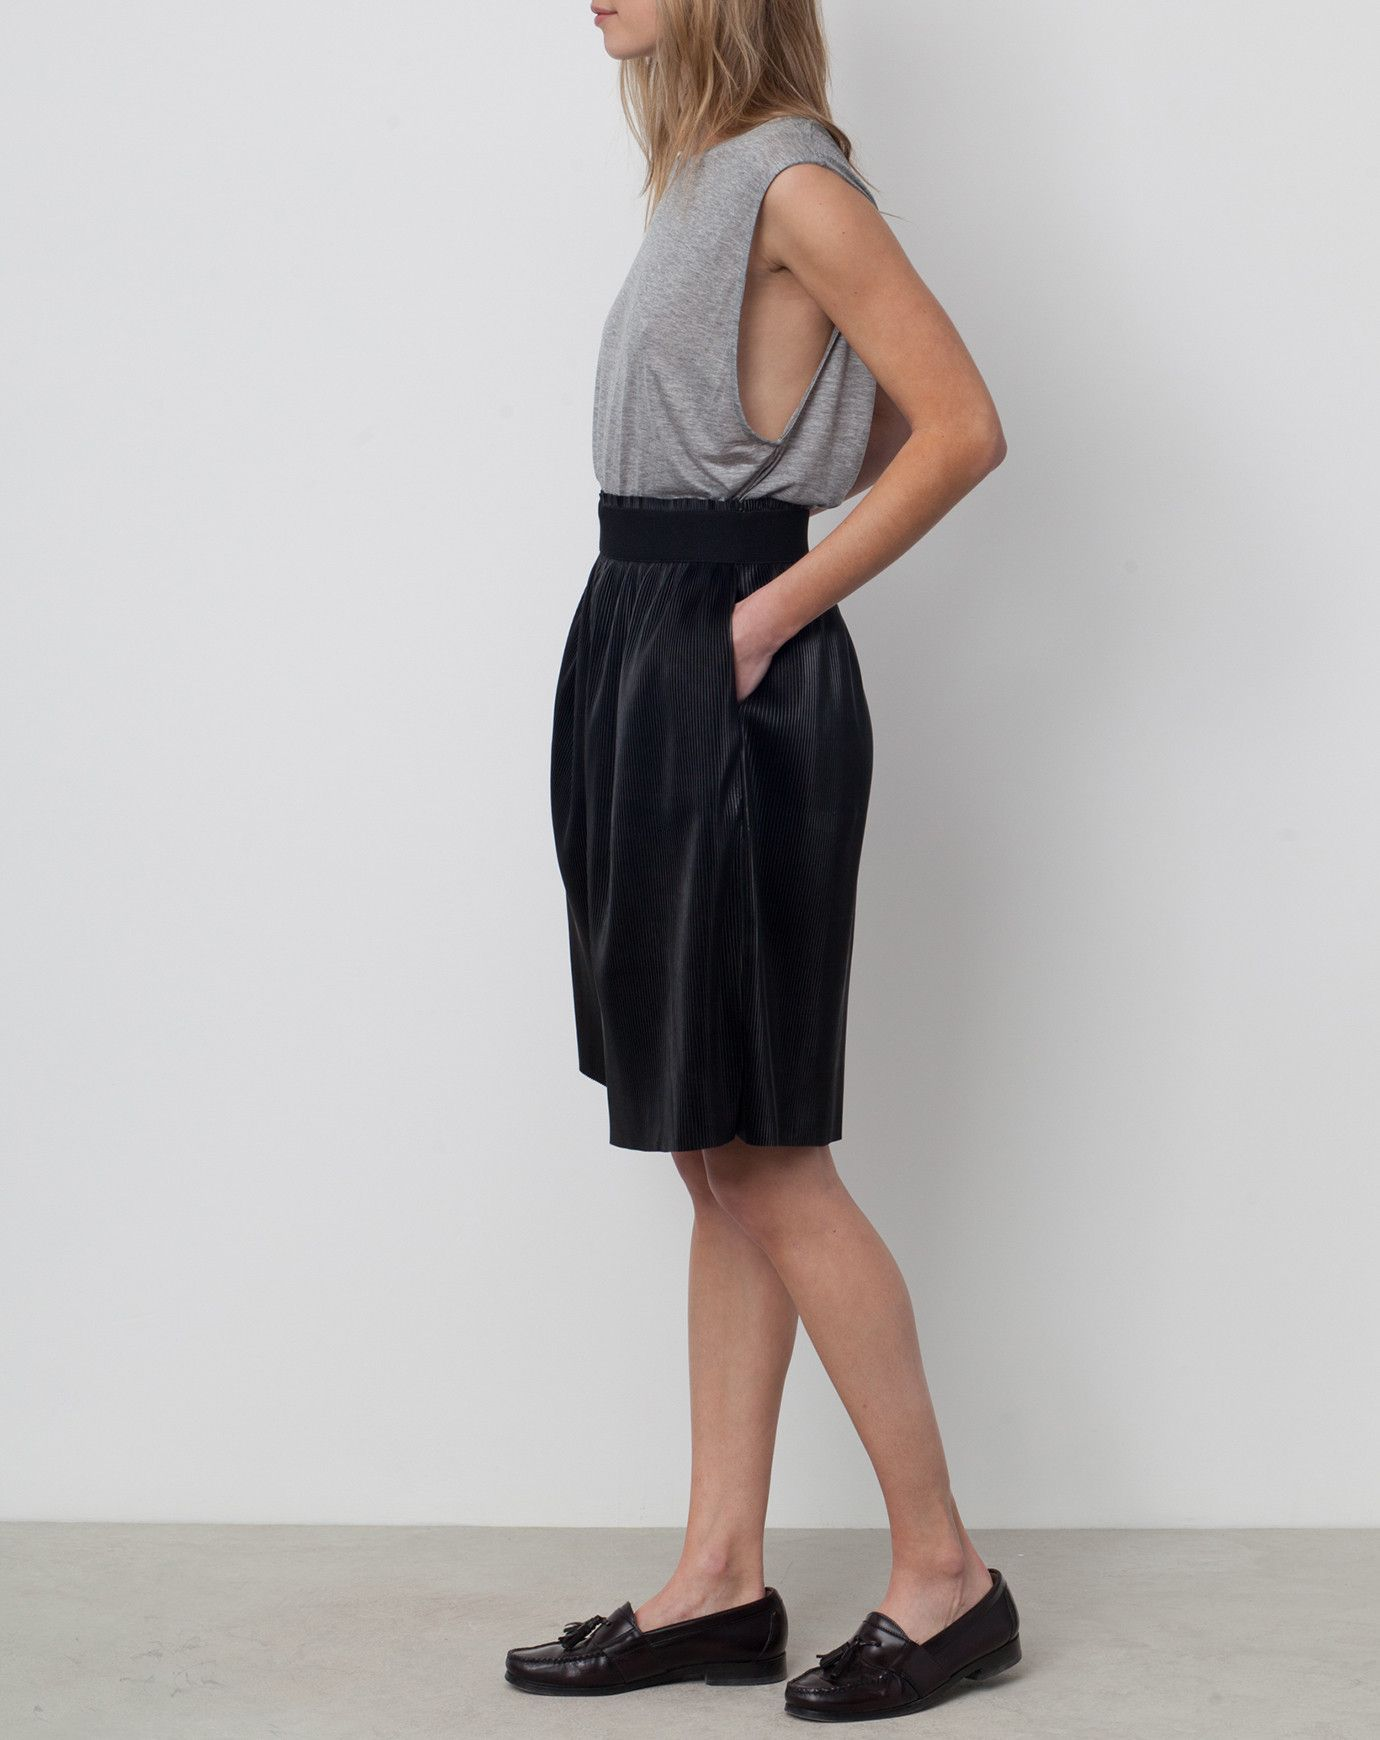 Rodebjer Thoth Pleated Long Short in Black